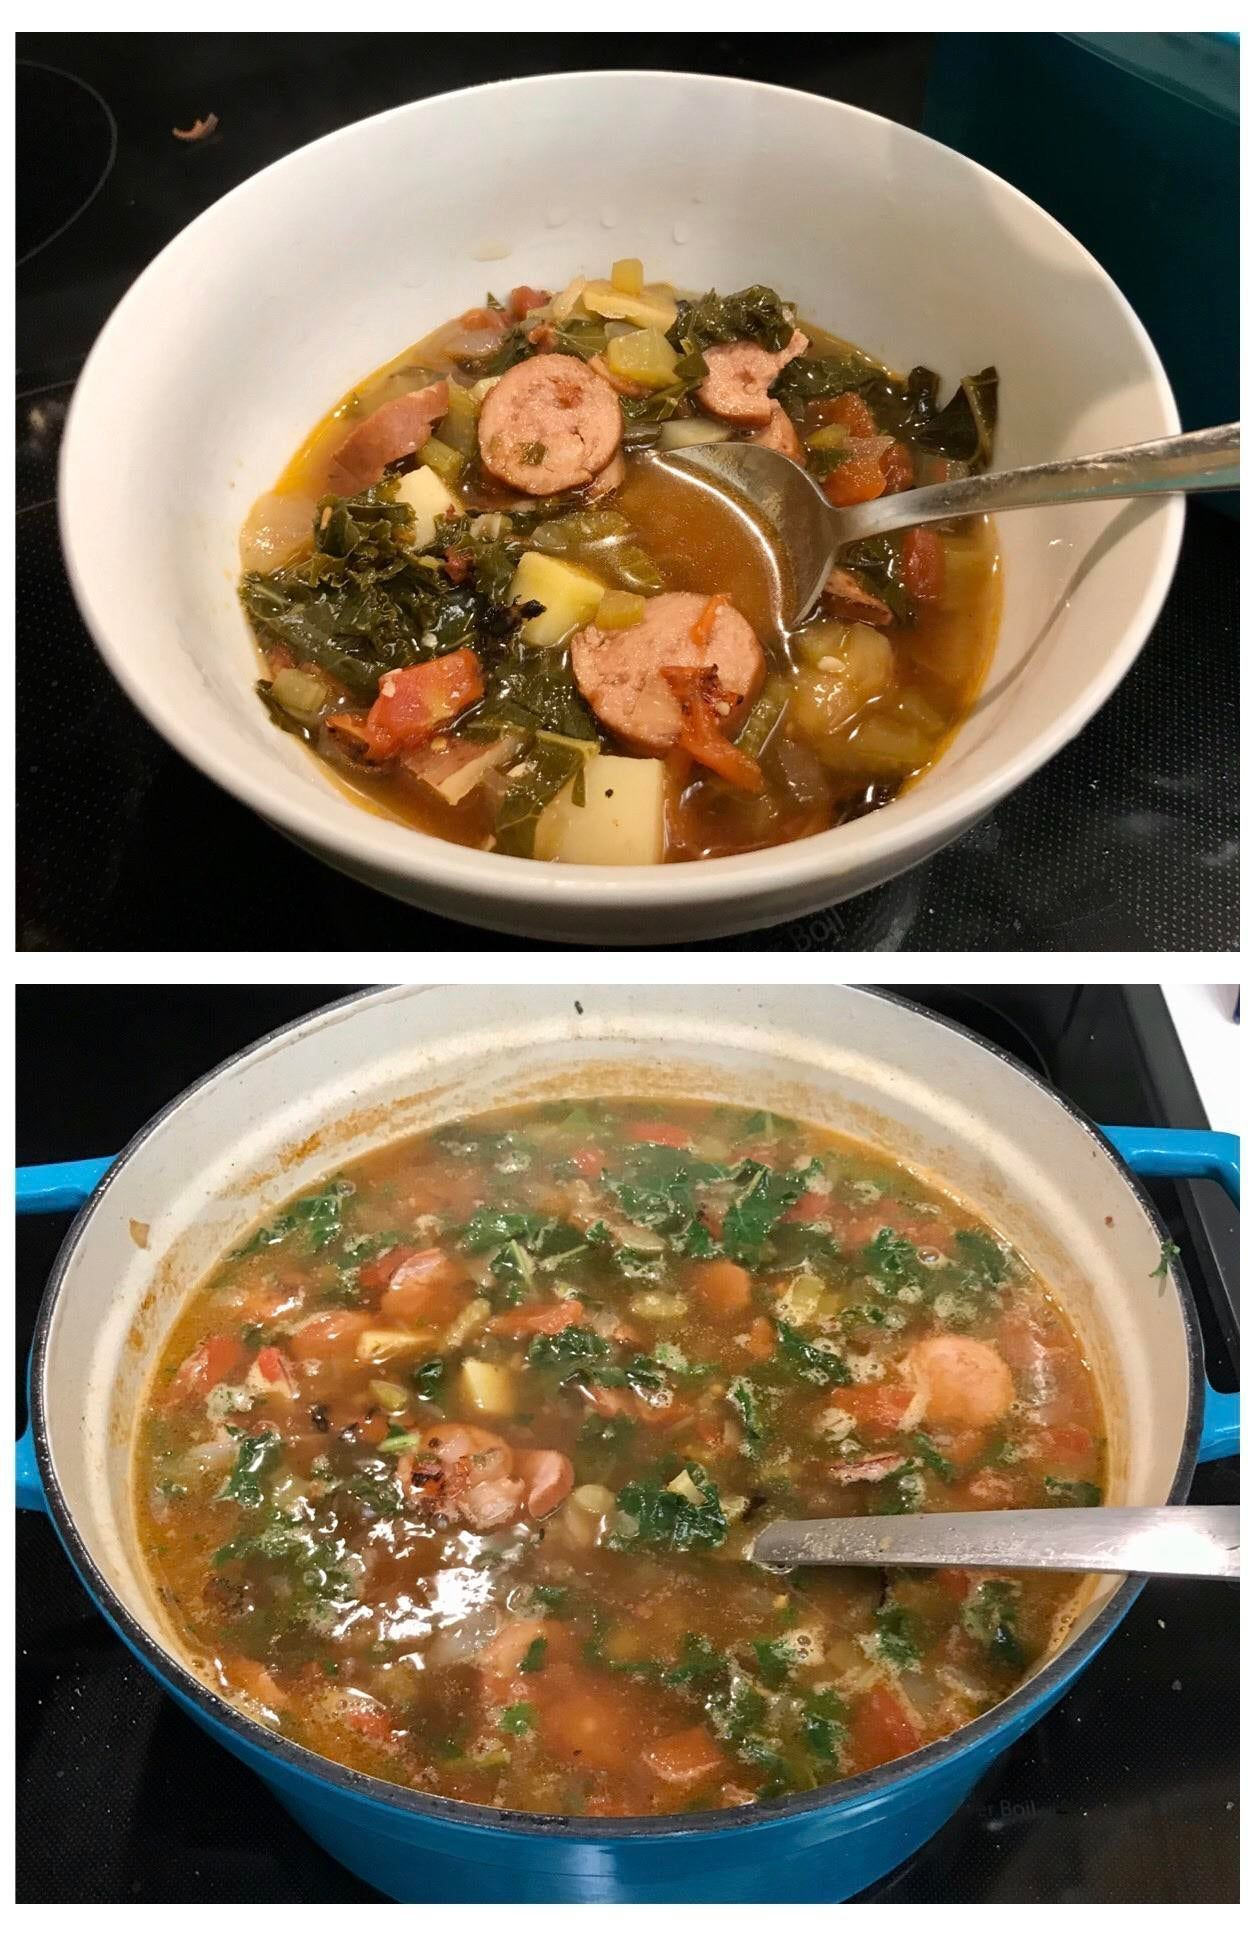 #Recipes — Sausage Kale and Roasted Tomato soup. Great for cold weather conditions — frustra... #coldweatherfood Sausage Kale and Roasted Tomato soup. Great for cold weather conditions — frustrating —  #FoodPic #FoodPicsDaily #Lunch #MealPrep #coldweatherrecipes #Recipes — Sausage Kale and Roasted Tomato soup. Great for cold weather conditions — frustra... #coldweatherfood Sausage Kale and Roasted Tomato soup. Great for cold weather conditions — frustrating —  #FoodPic #FoodPicsD #coldweatherrecipes